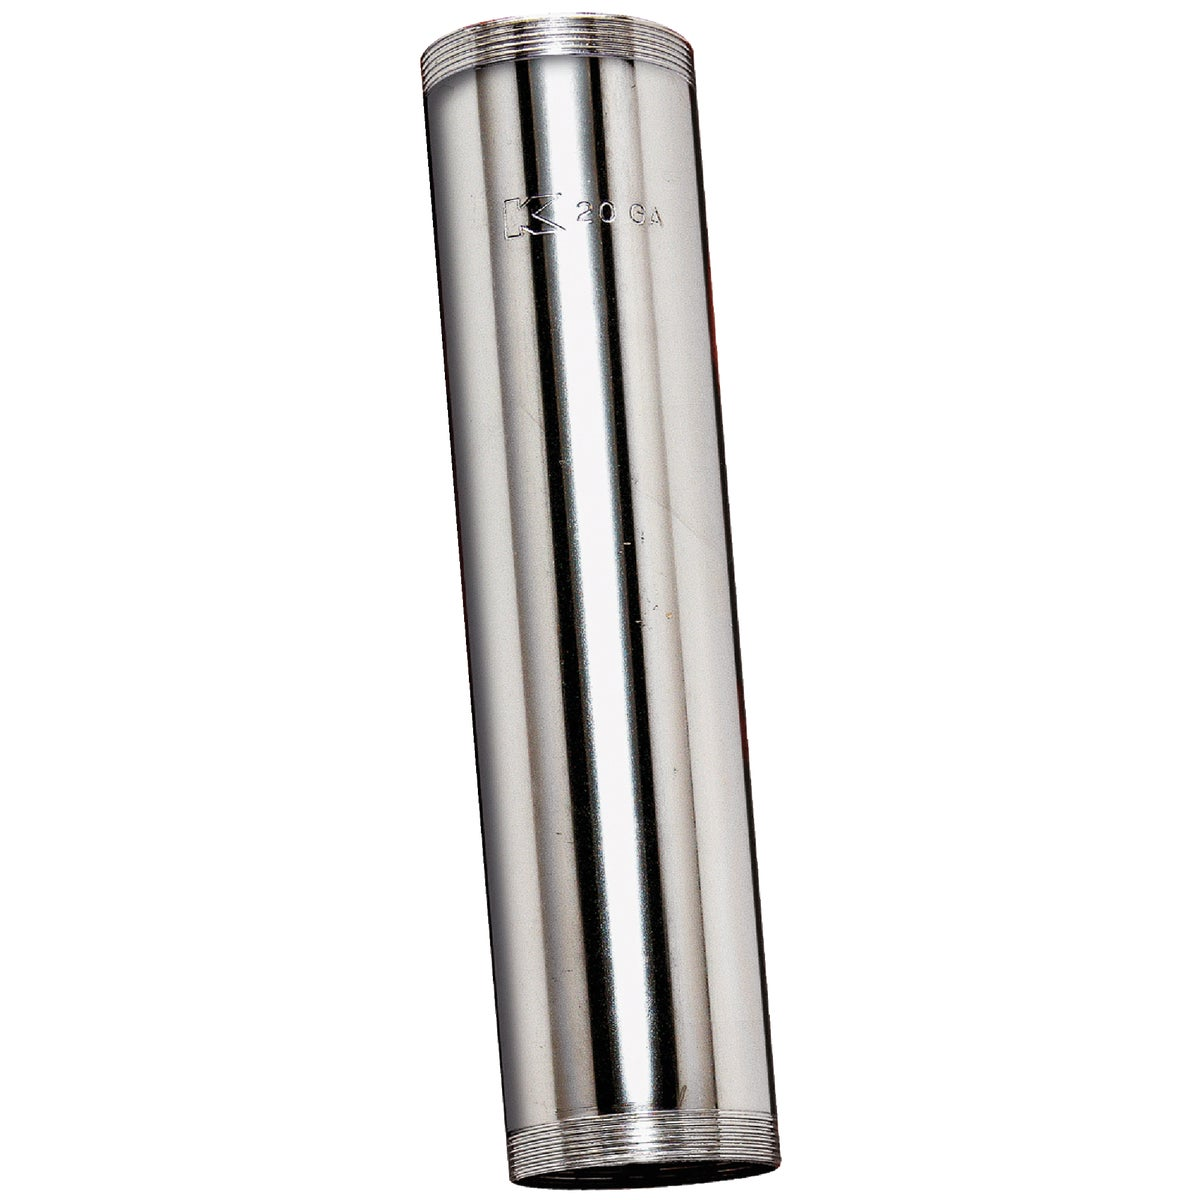 1-1/4X6 THREADED TUBE